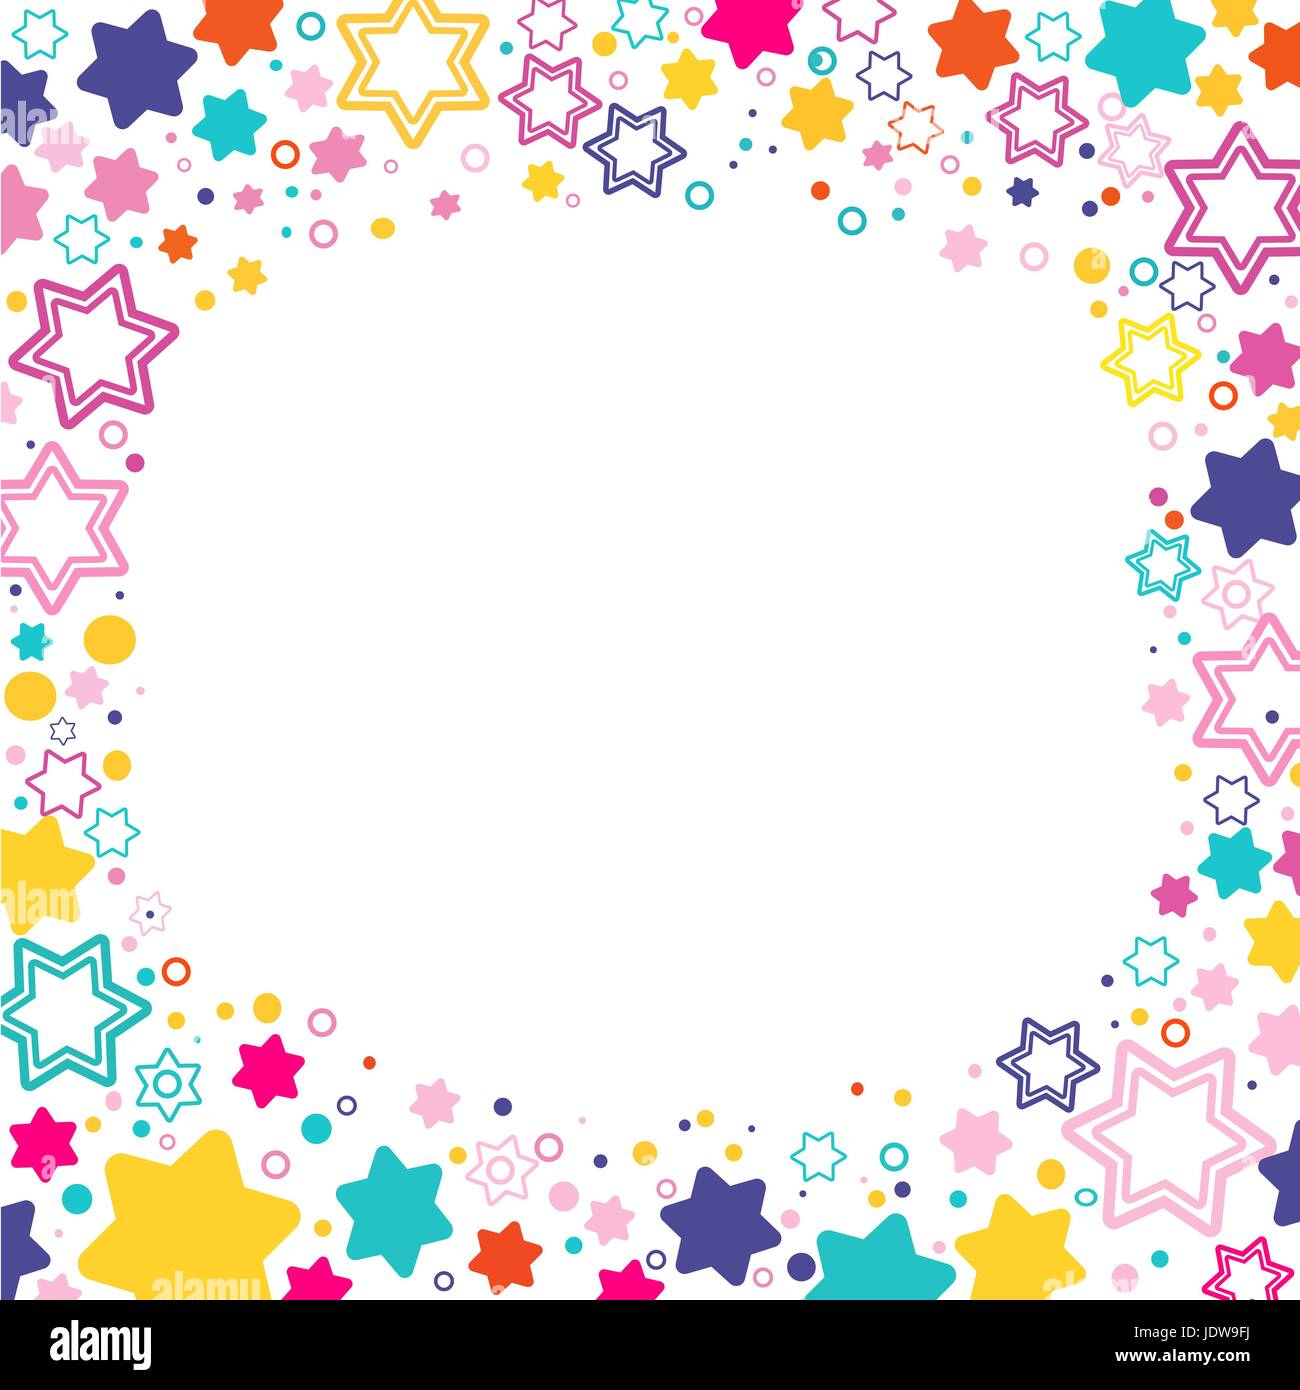 Vector square frame with colored stars David on the white background, sparkles colored symbols - star glitter, stellar - Stock Vector